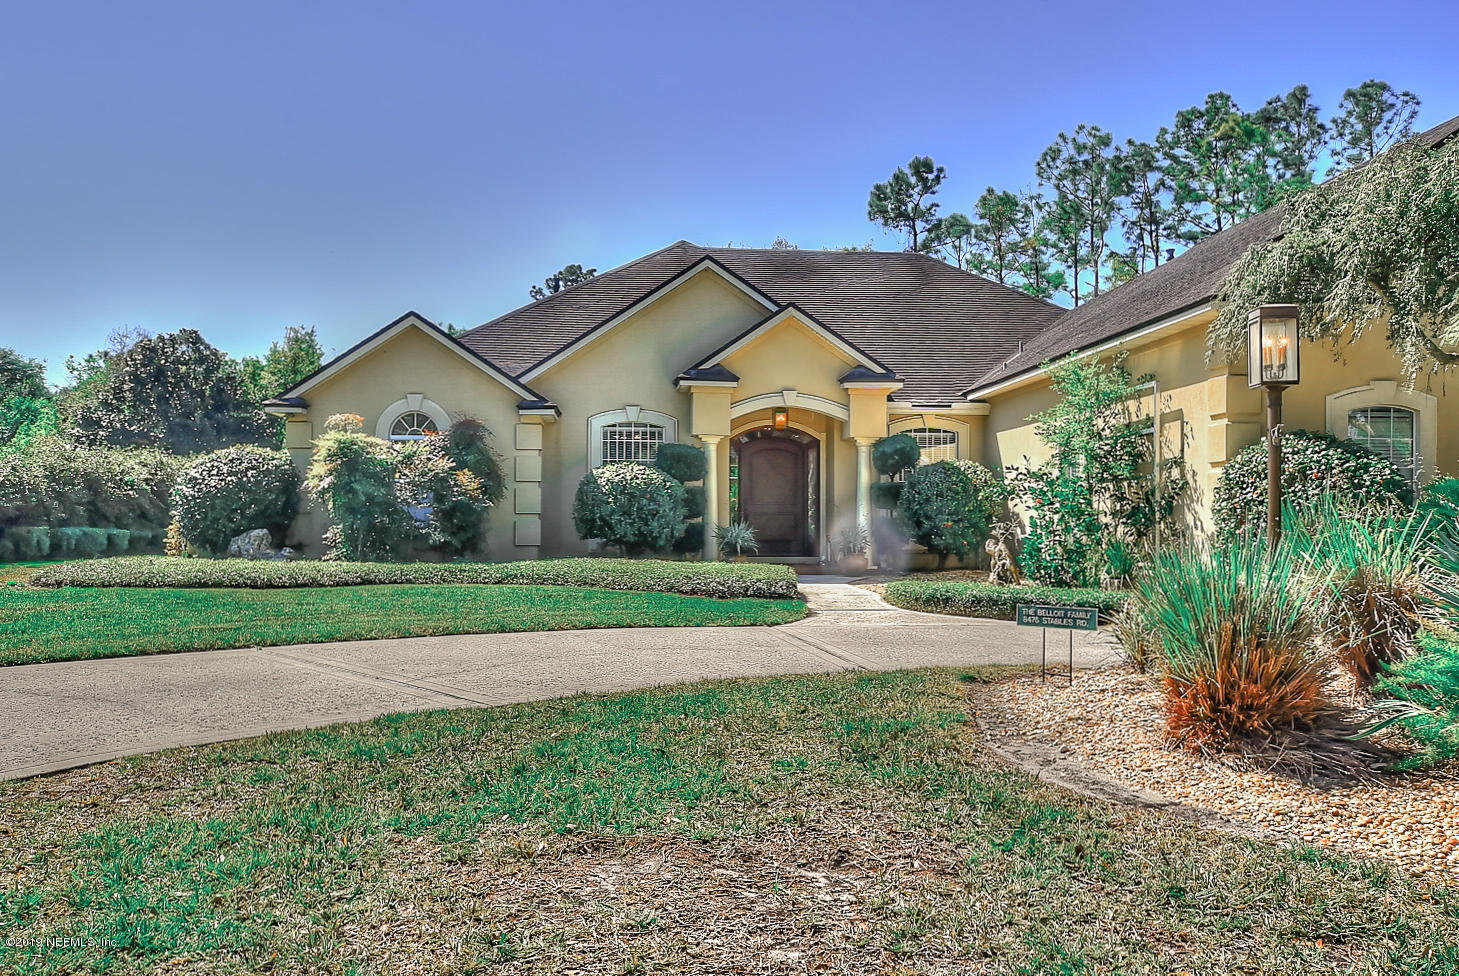 8476 STABLES, JACKSONVILLE, FLORIDA 32256, 6 Bedrooms Bedrooms, ,4 BathroomsBathrooms,Residential - single family,For sale,STABLES,985980